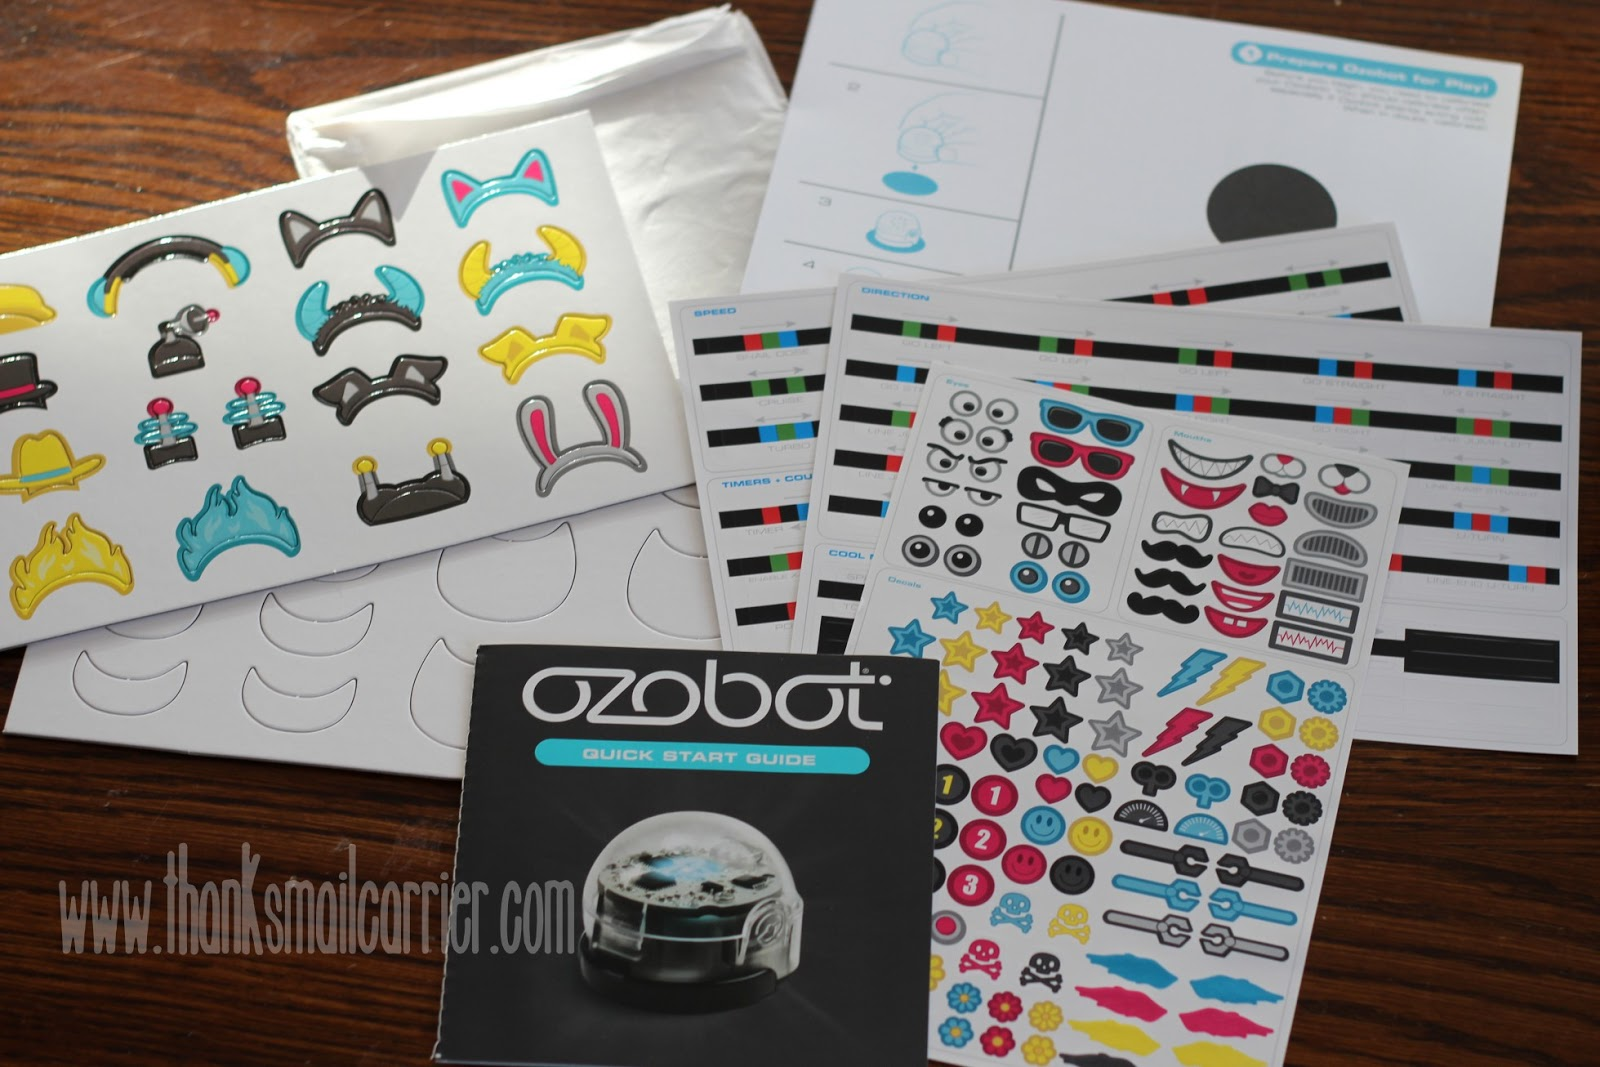 Ozobot quick start guide